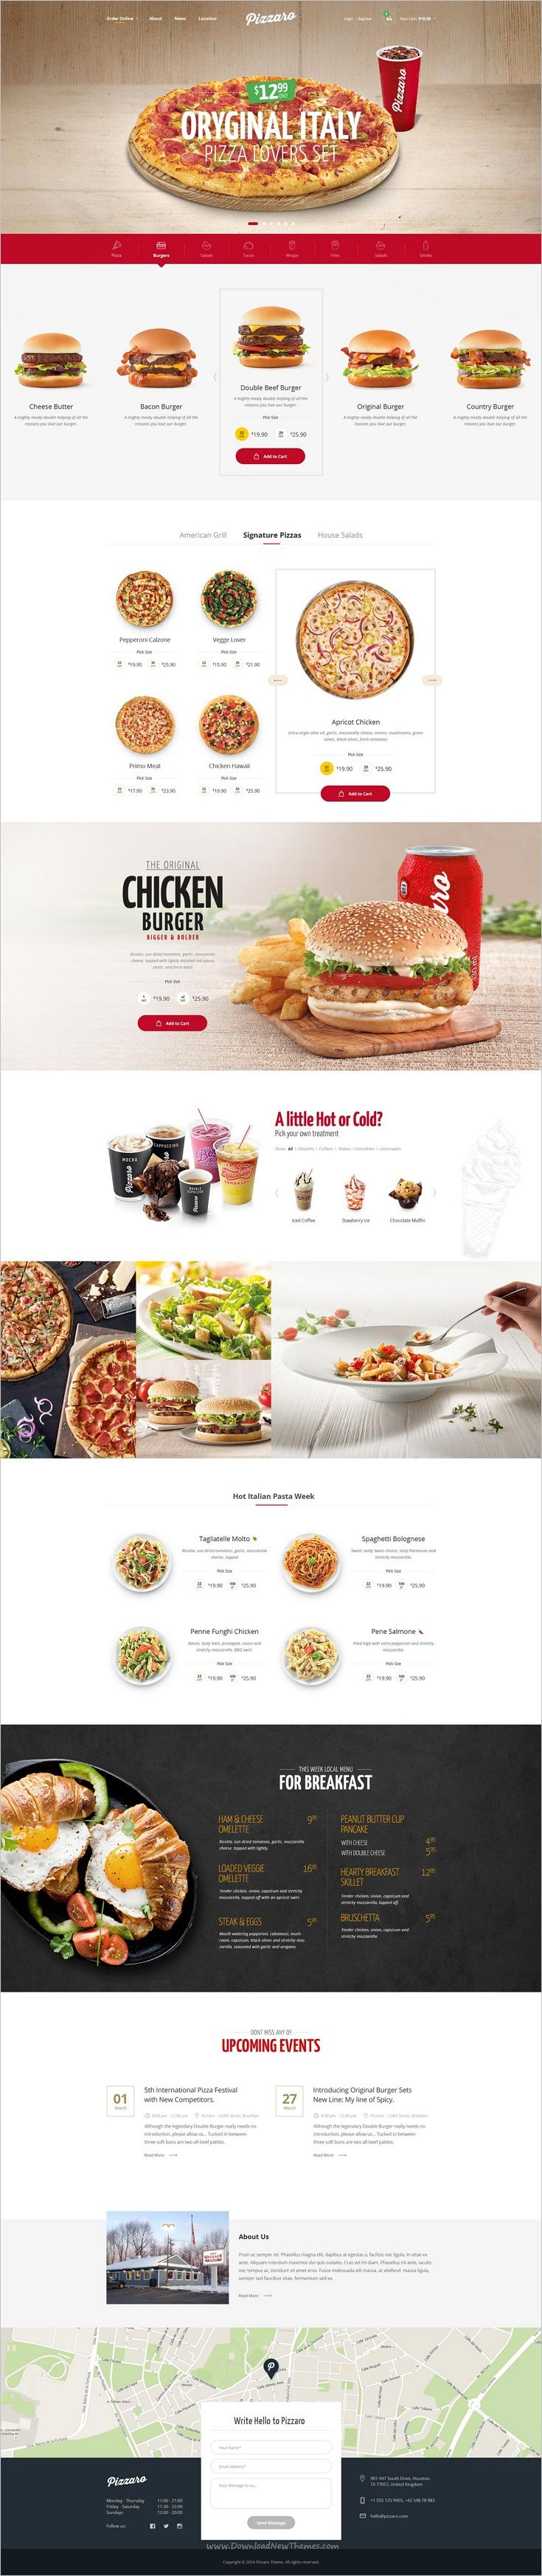 Pizzaro is modern and elegant design responsive 7in1 #WordPress theme for #burger #pasta fast #food and restaurant websites download now➩ https://themeforest.net/item/pizzaro-food-online-ordering-woocommerce-theme/19209143?ref=Datasata